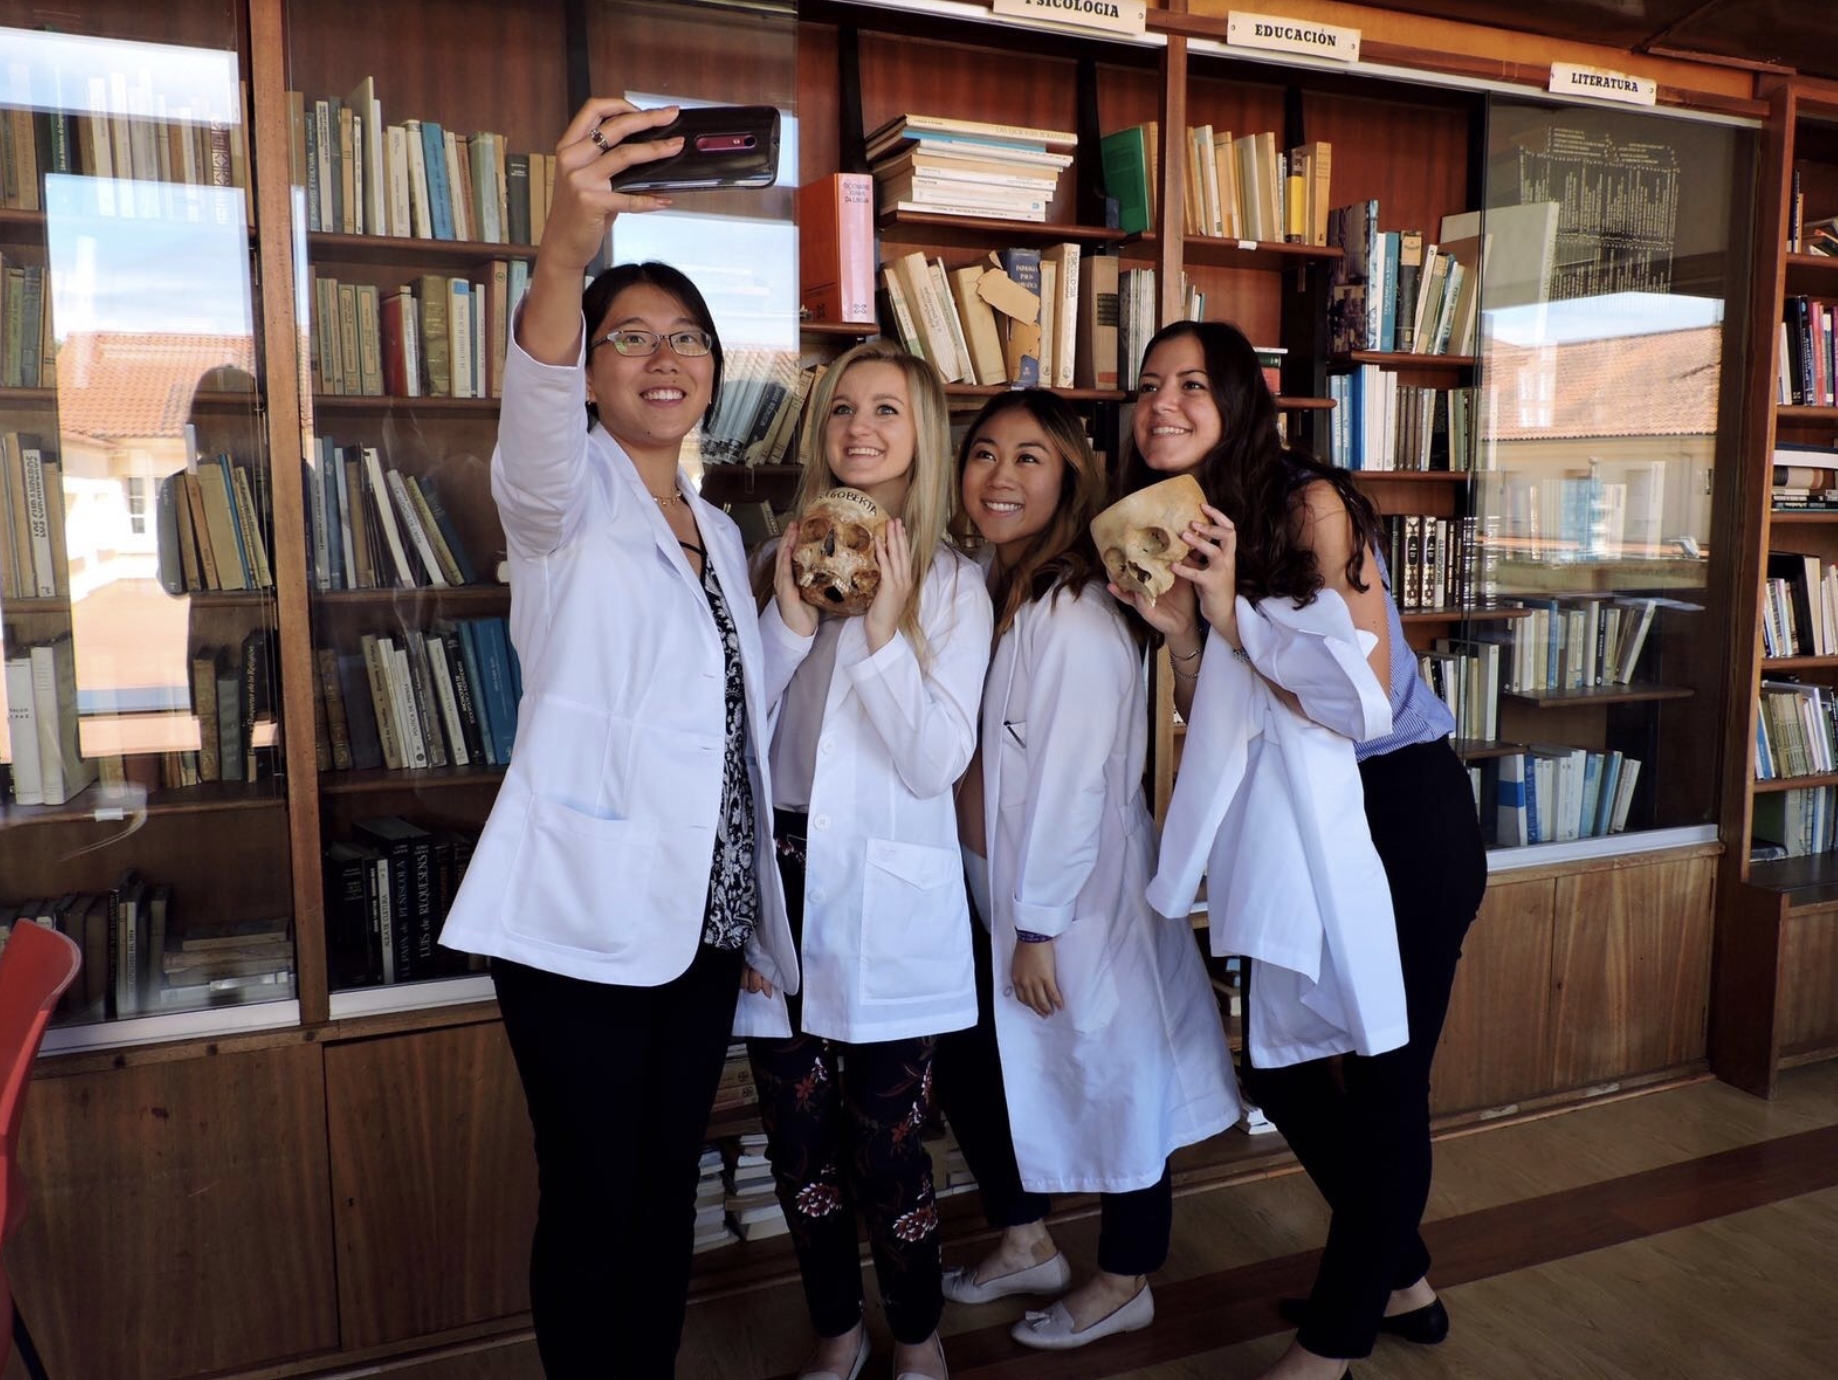 Us taking a silly picture in Santiago with some of the skulls in the library.